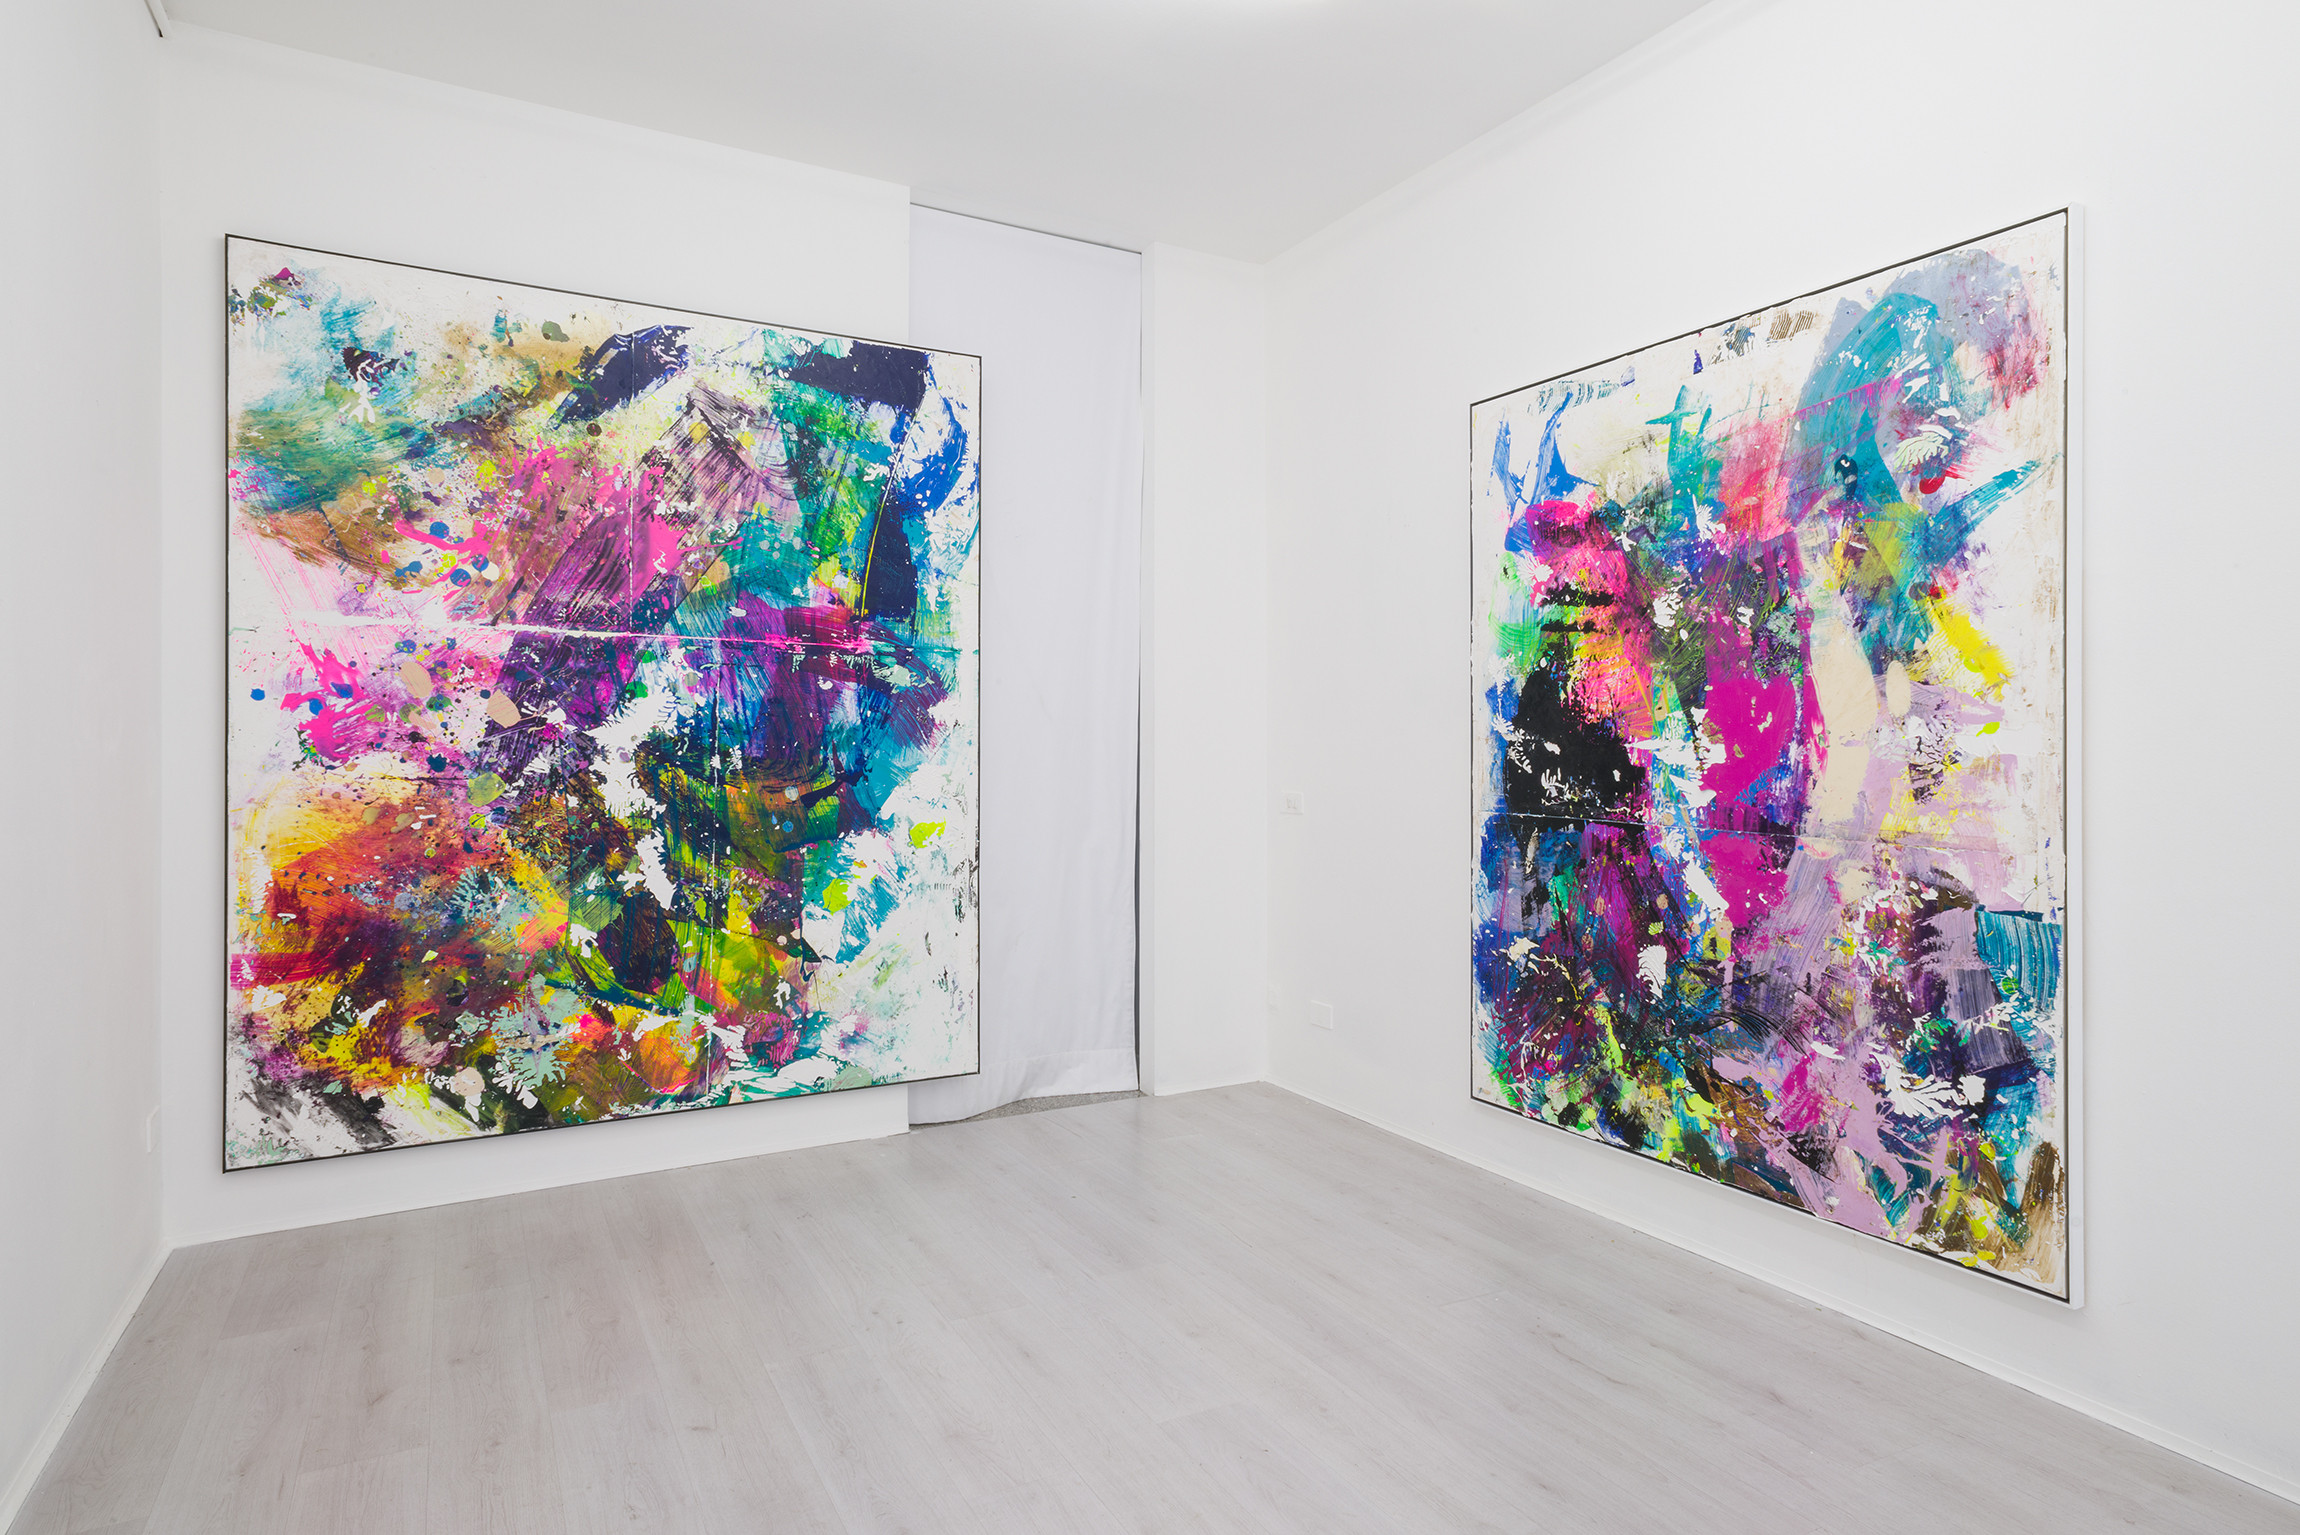 4. Firnt, Tiziano Martini exhibition view at A+B gallery